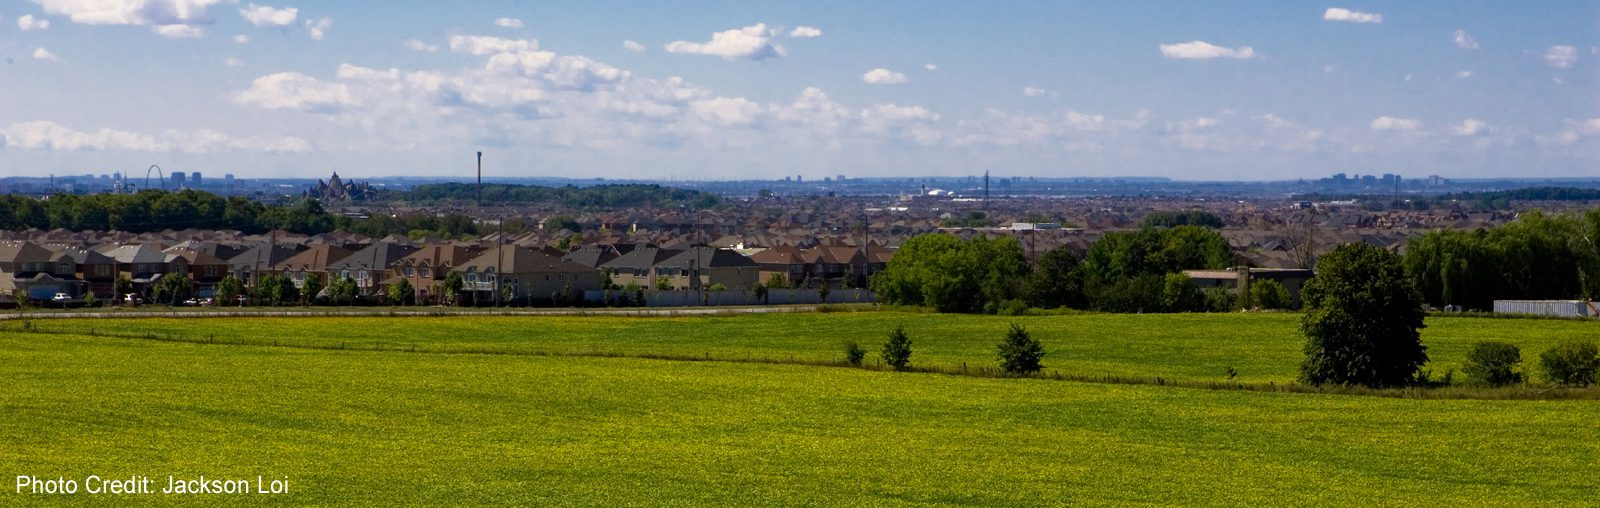 View of fields and homes in Vaughan,